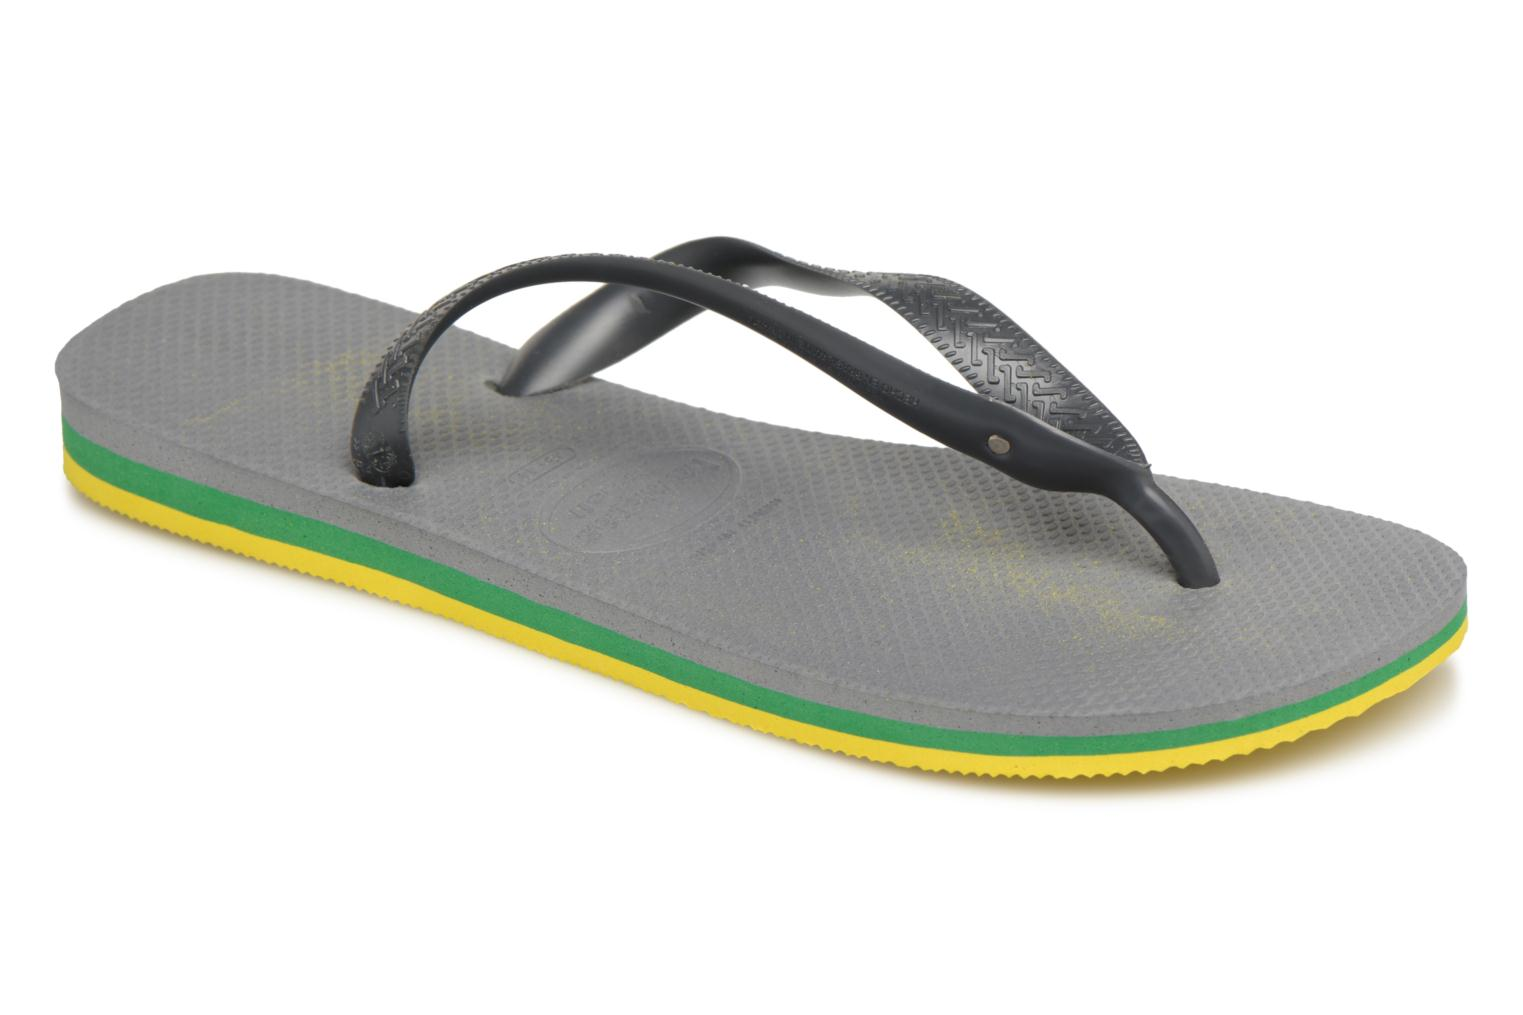 Marques Chaussure homme Havaianas homme Brasil Layers Steel Grey